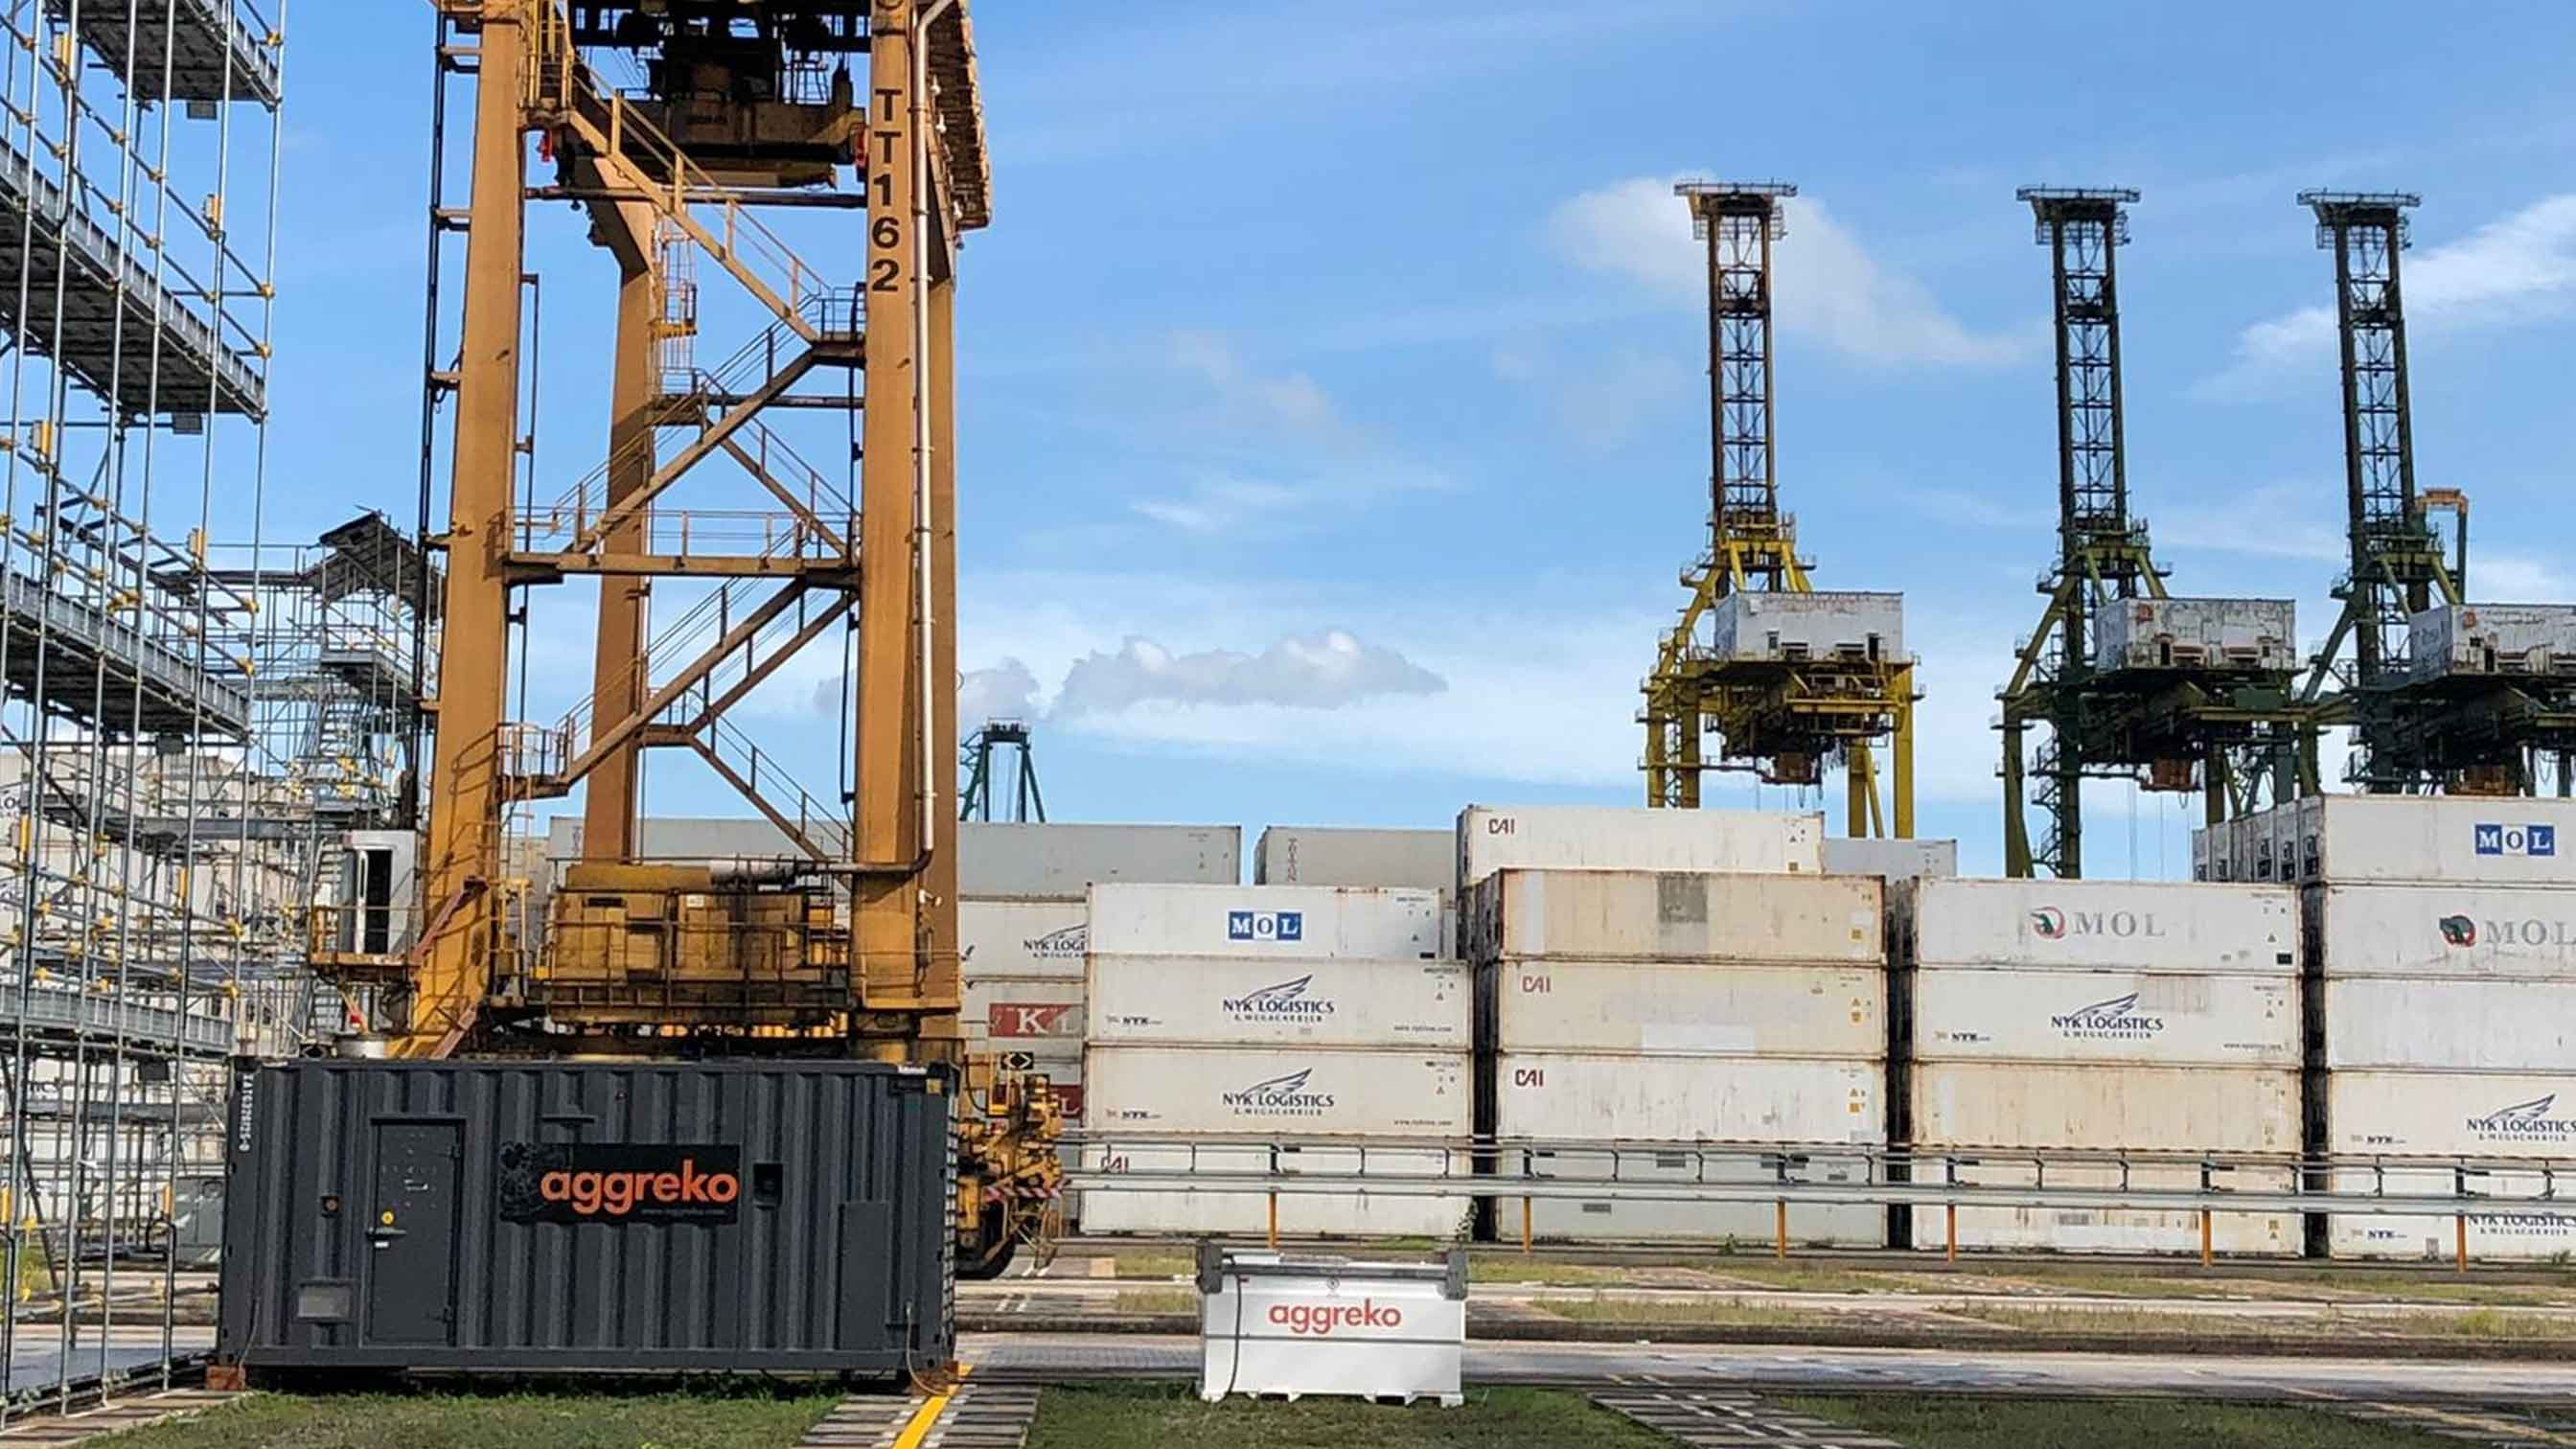 Aggreko generator with containers in the background and a crane at the docks